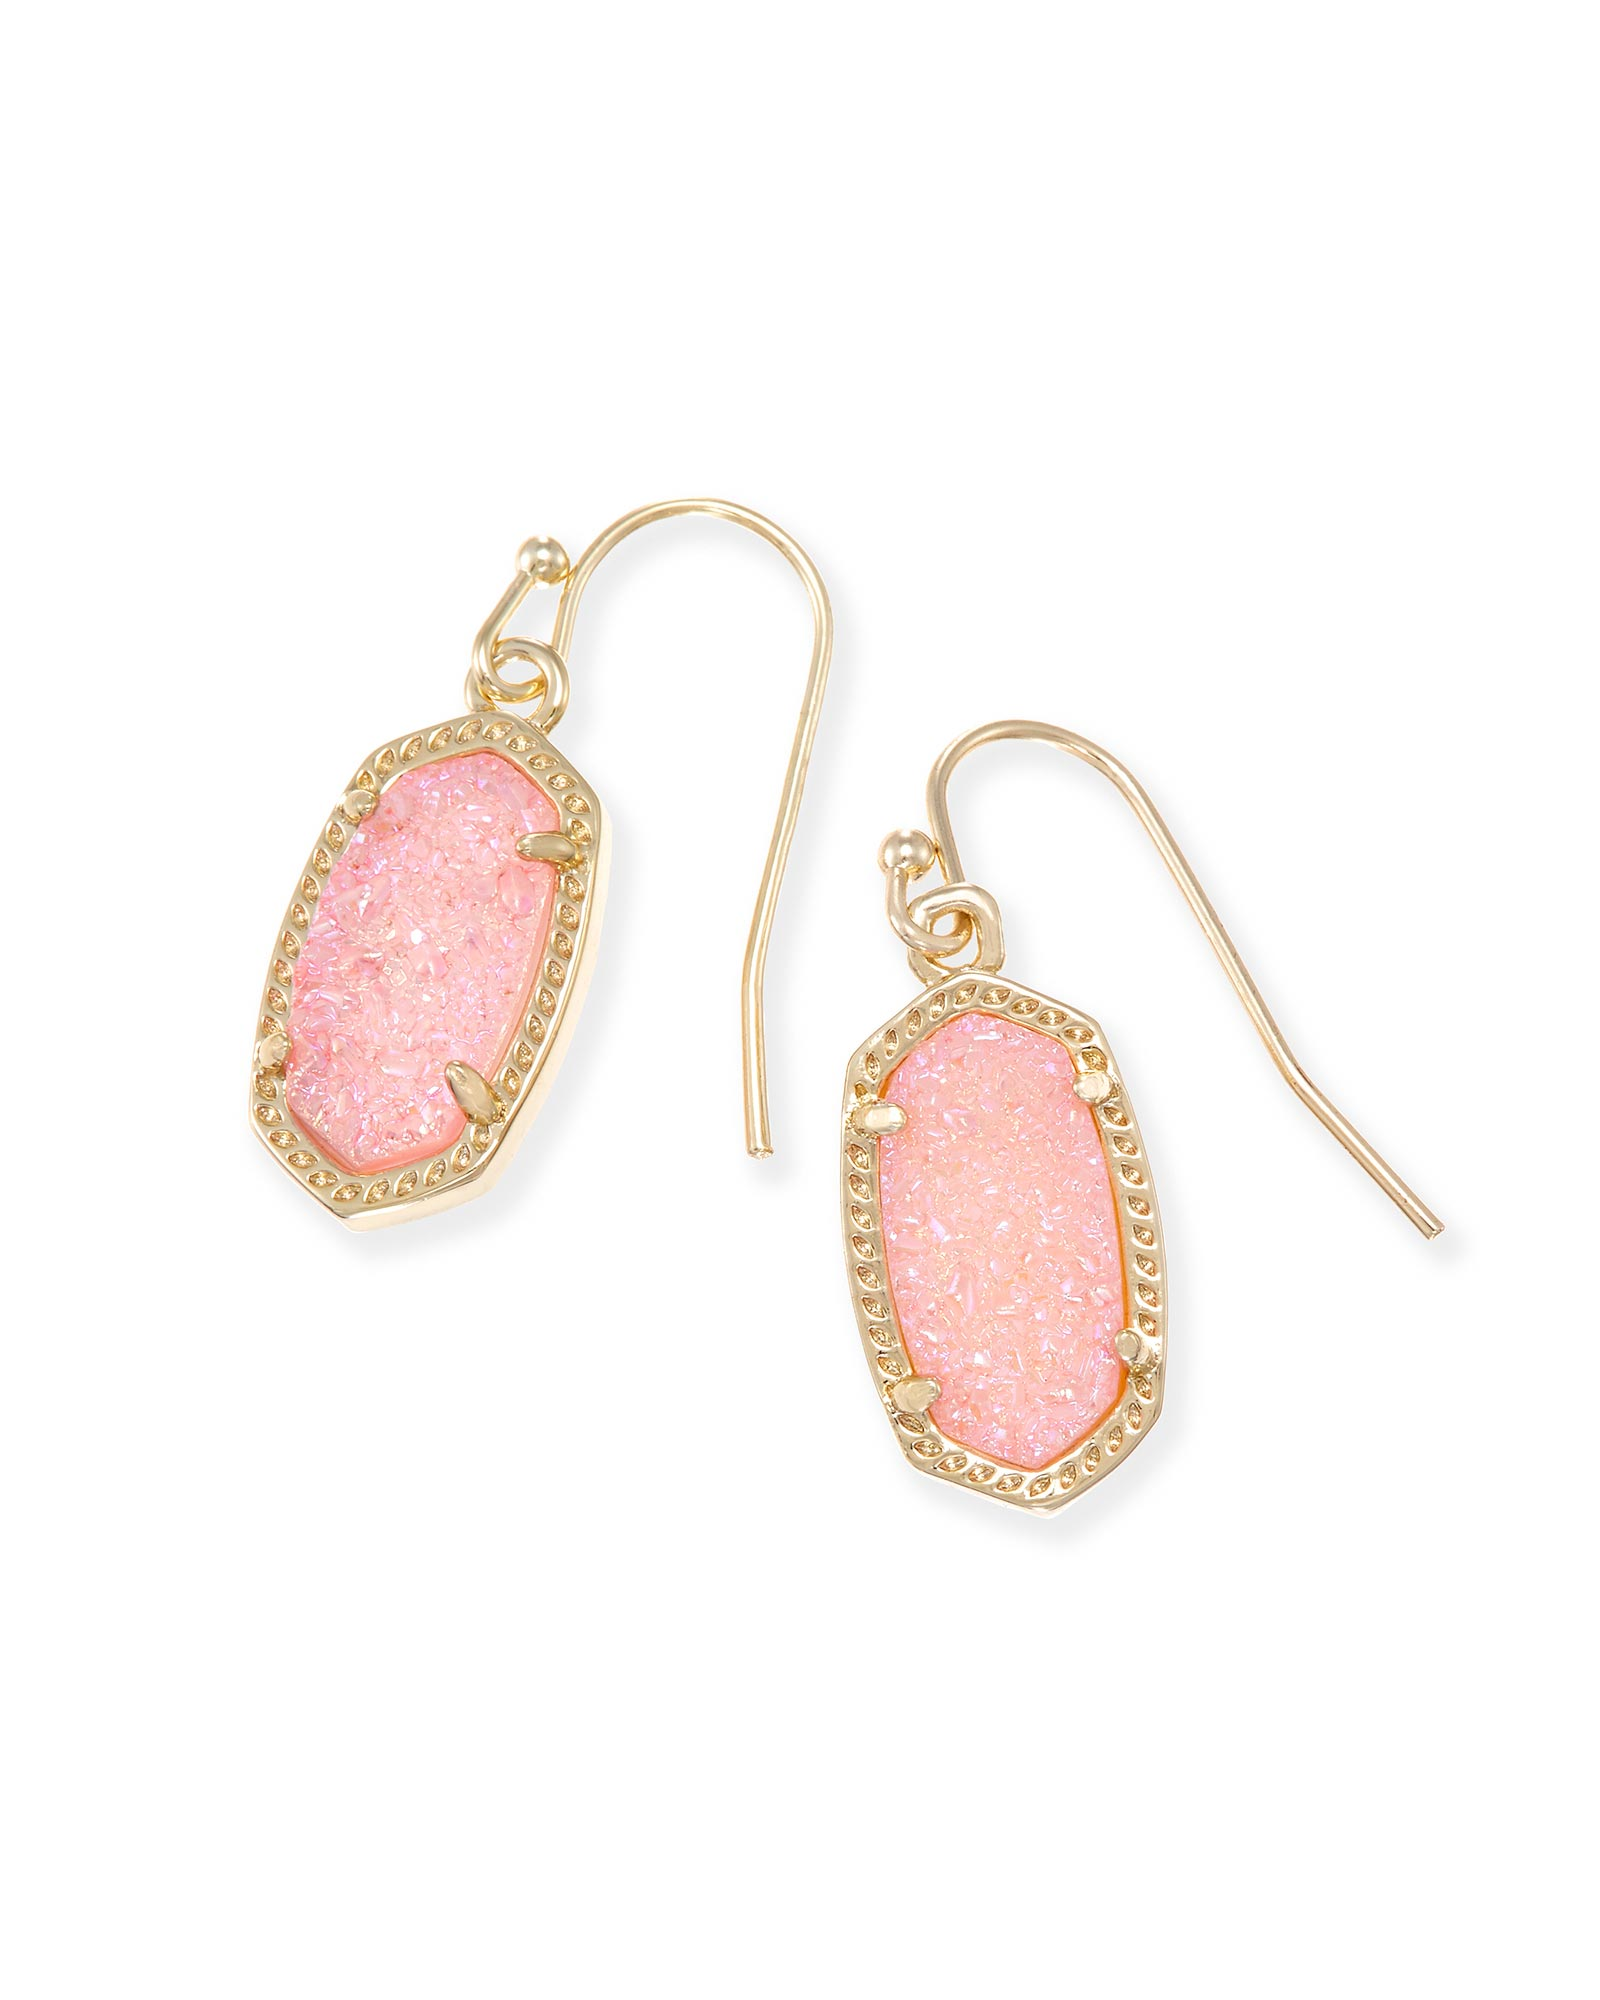 Lee Gold Oval Drop Earrings in Pink Drusy Kendra Scott